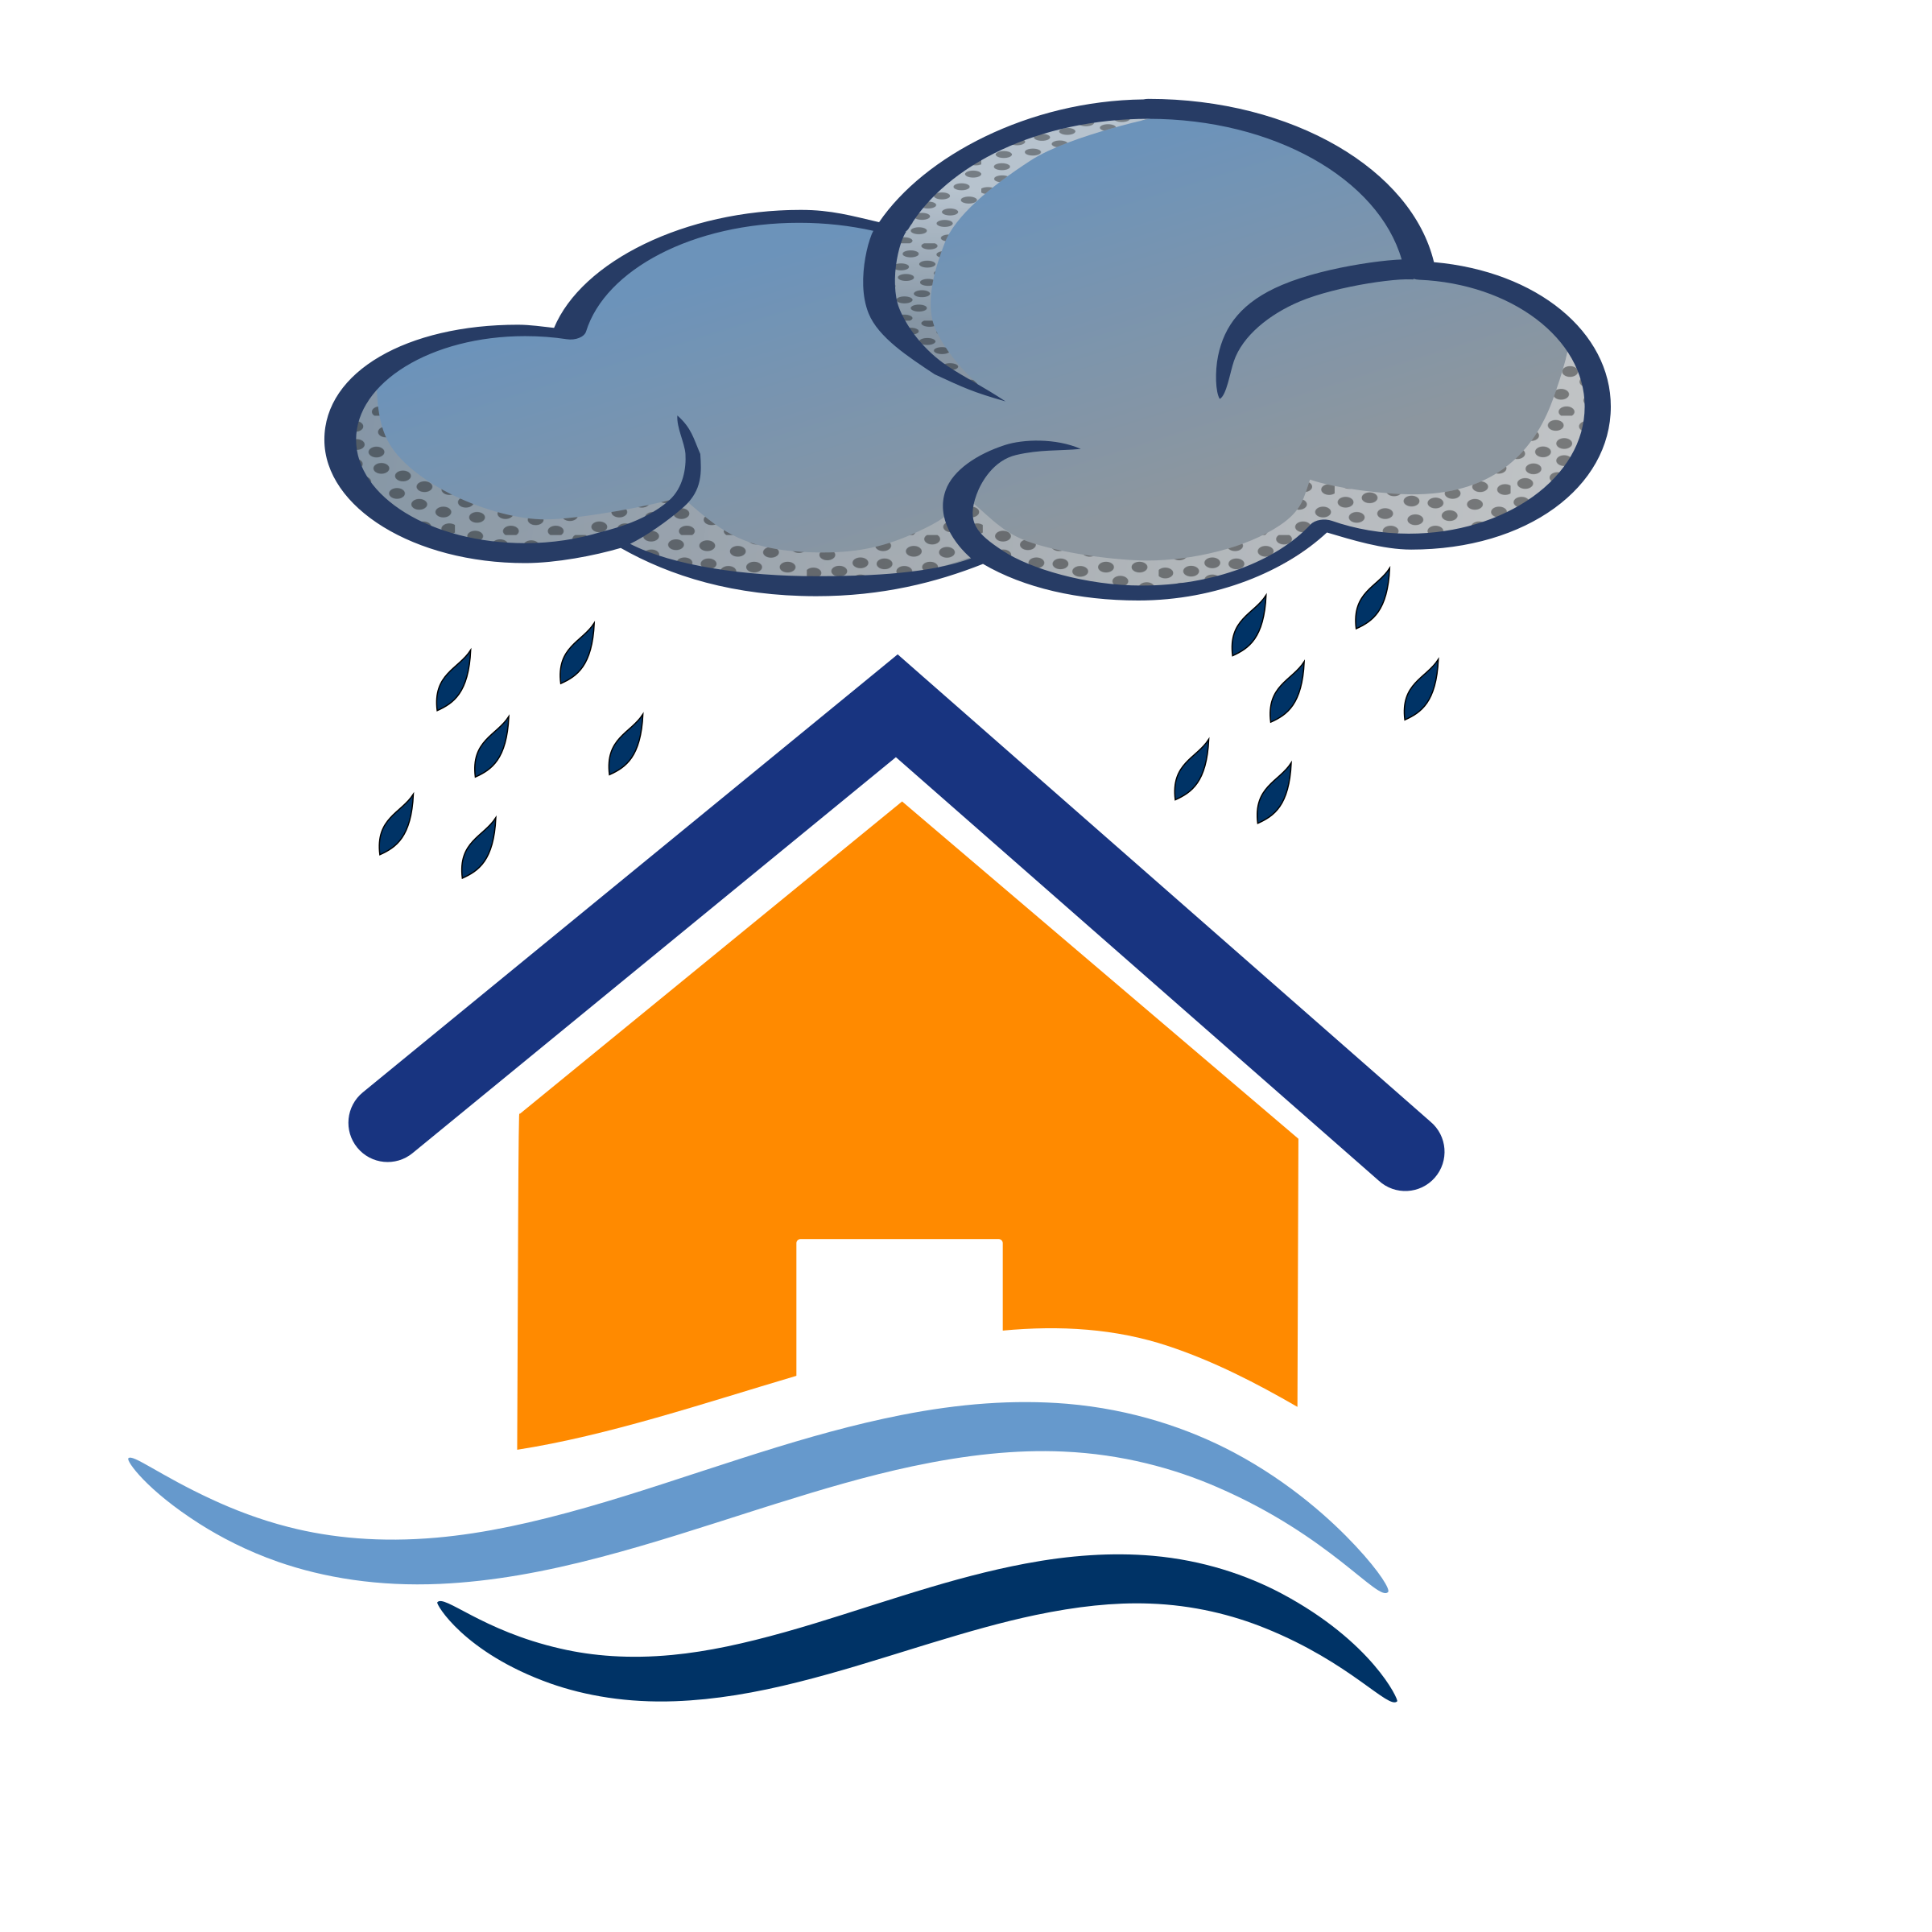 Flood clipart #13, Download drawings